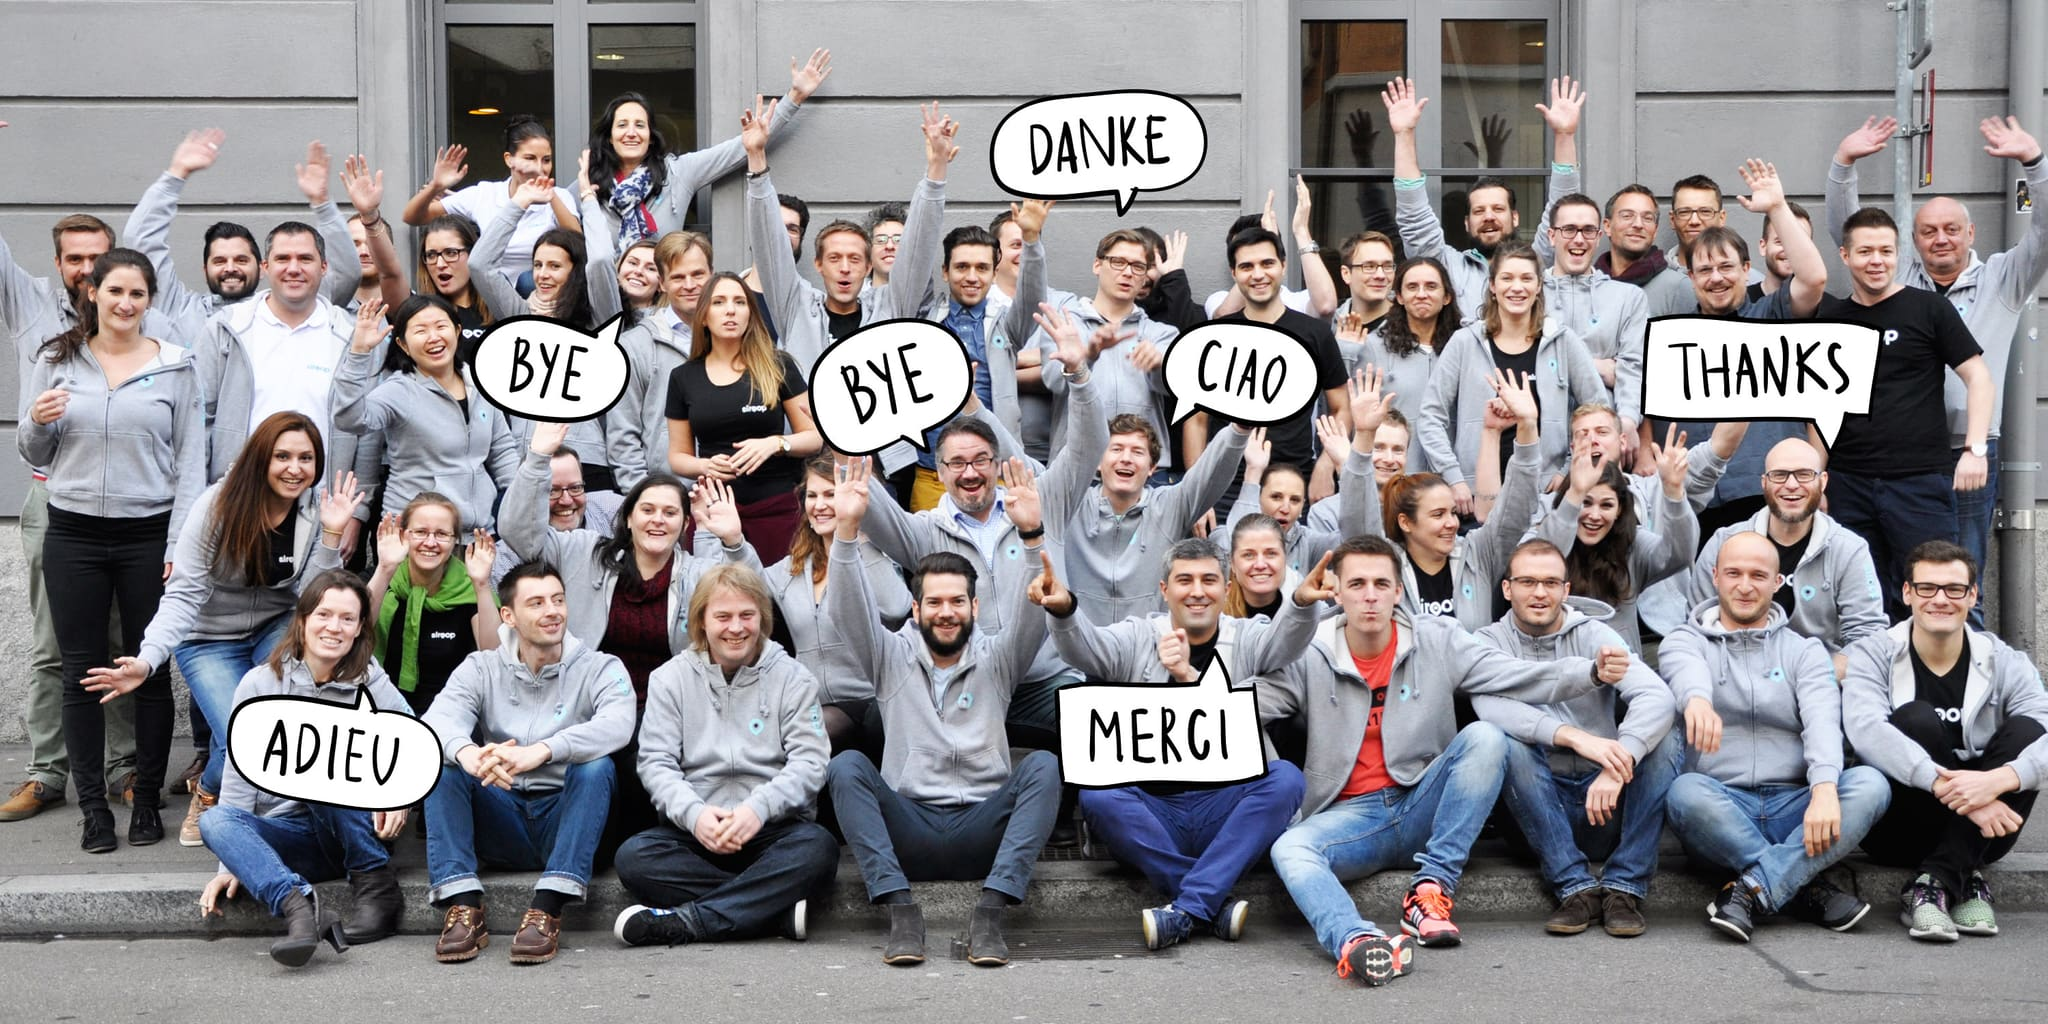 Das Siroop-Team sagt Good-Bye - Quelle: Siroop.ch